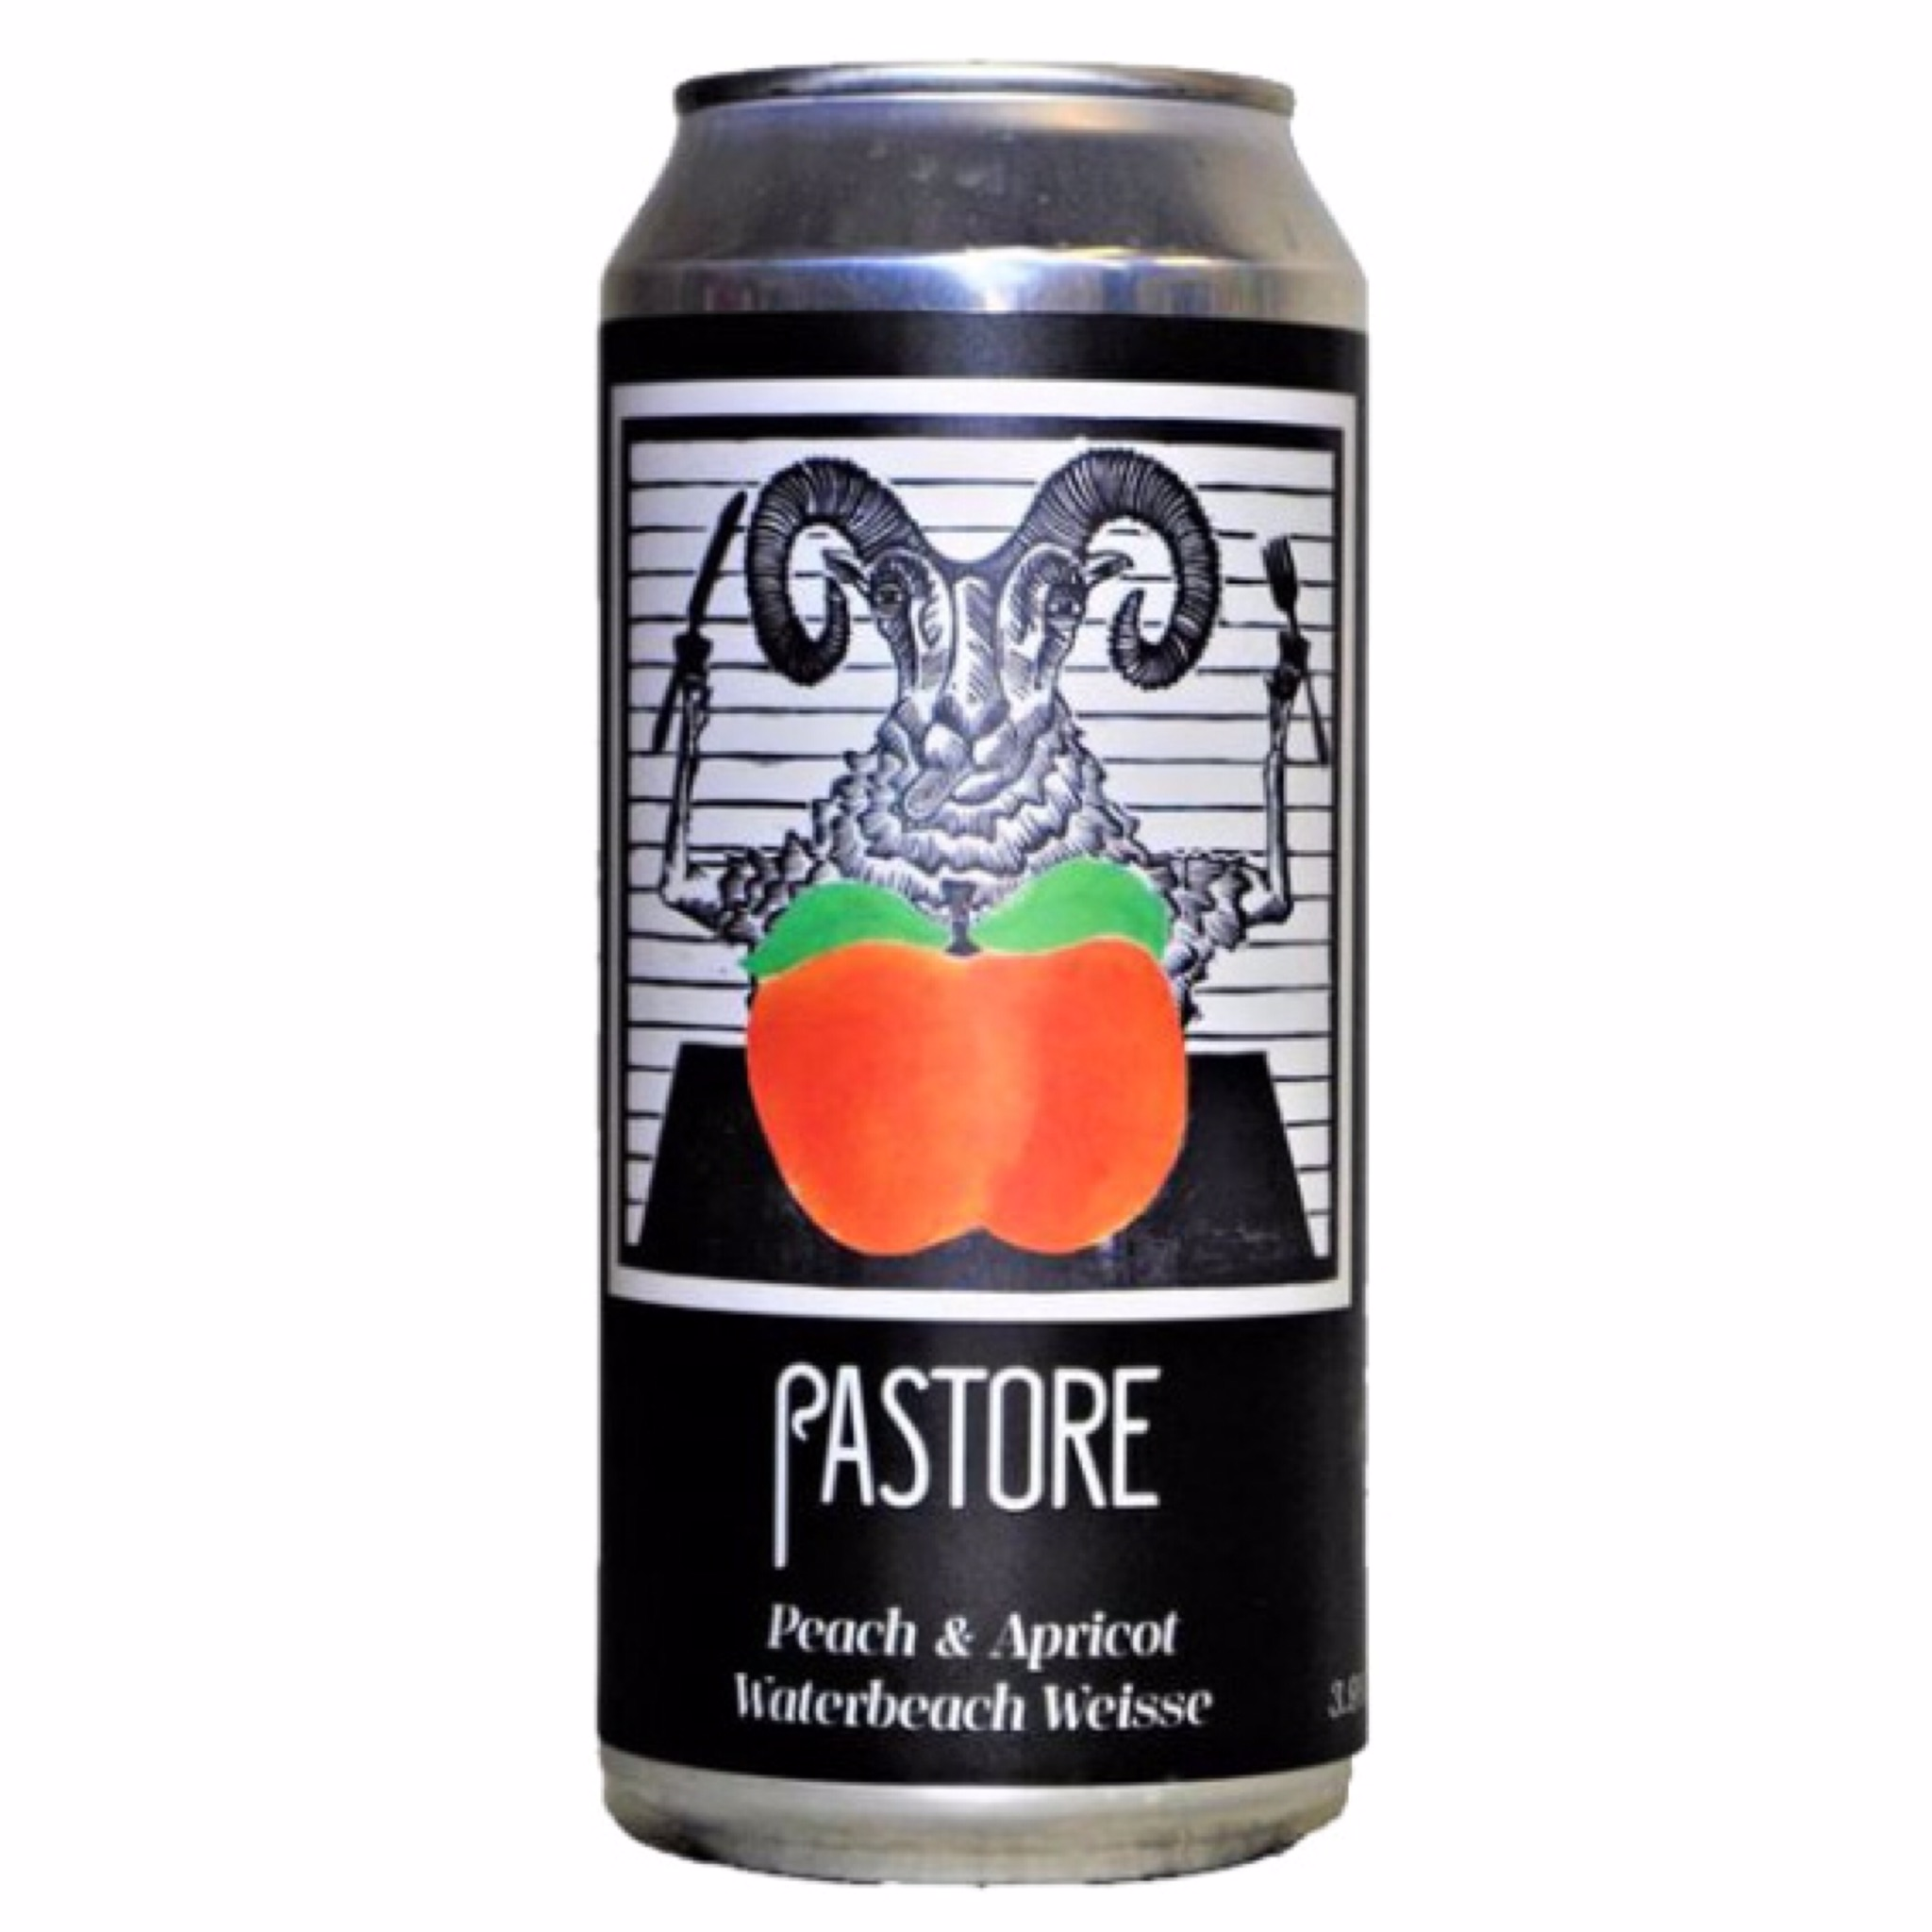 Peach & Apricot Waterbeach Weisse 3.9% 440ml Pastore Brewing